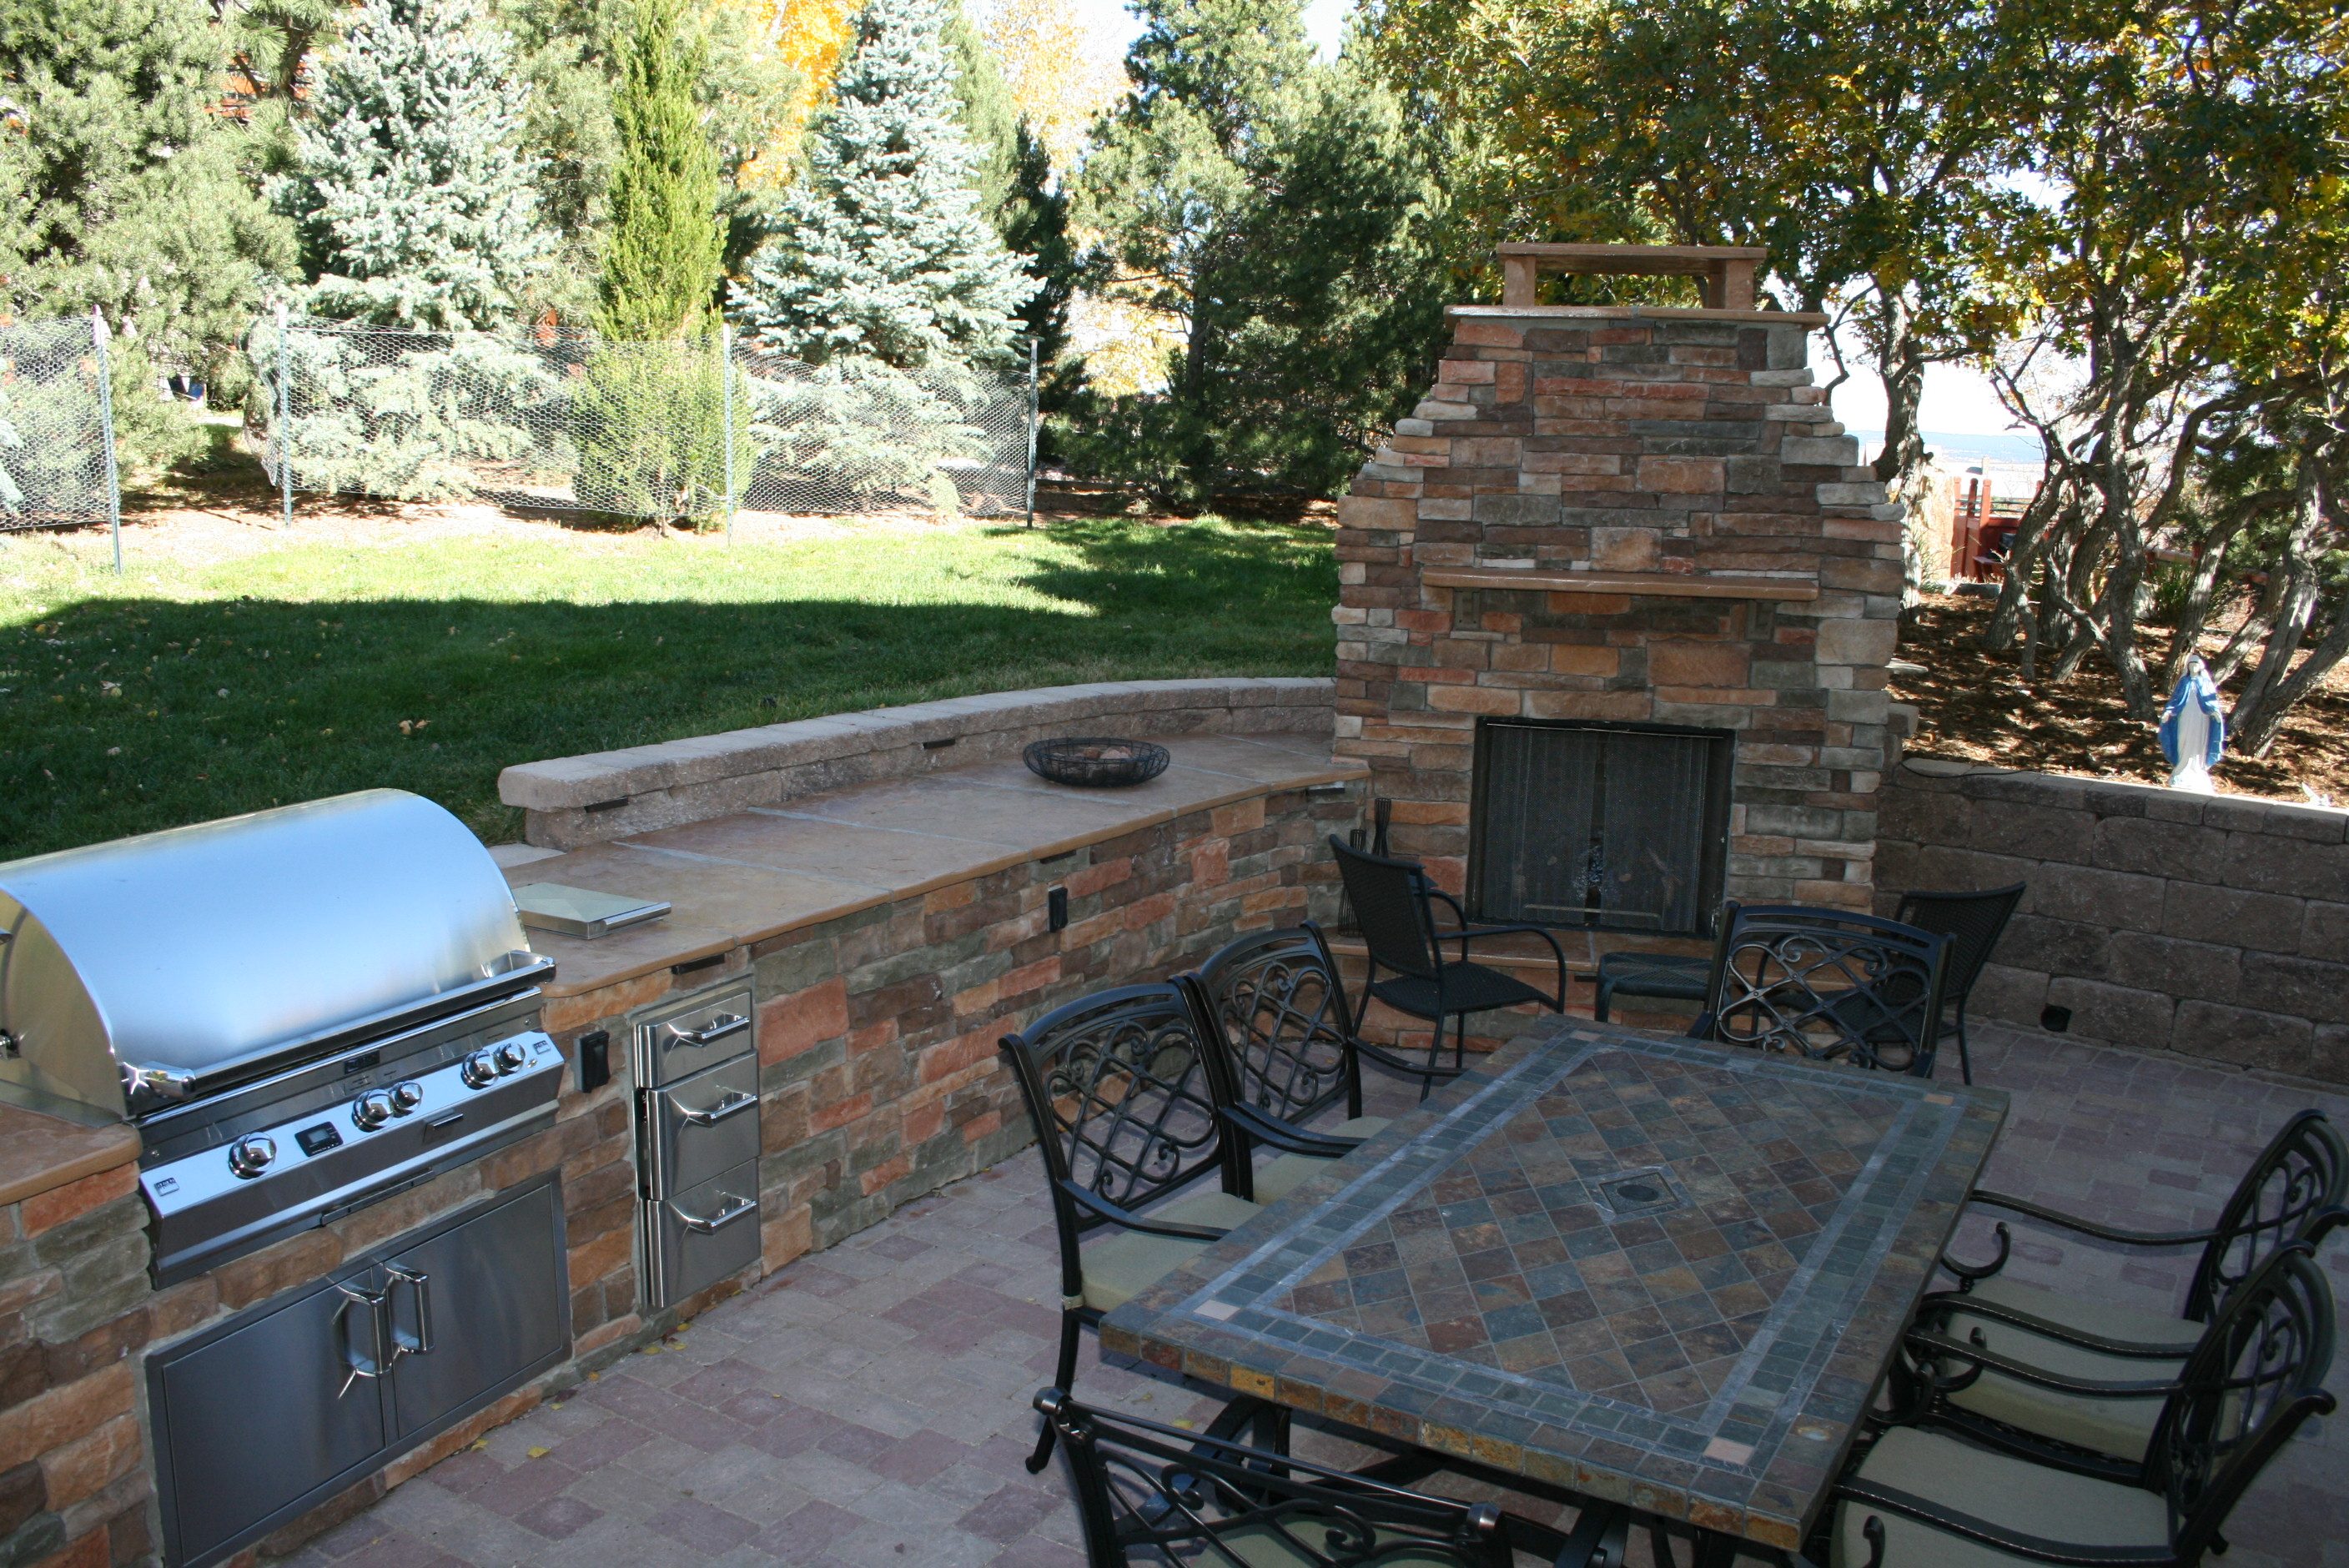 Outdoor kitchen installation outdoor fireplace designs for Outdoor fireplace kitchen designs